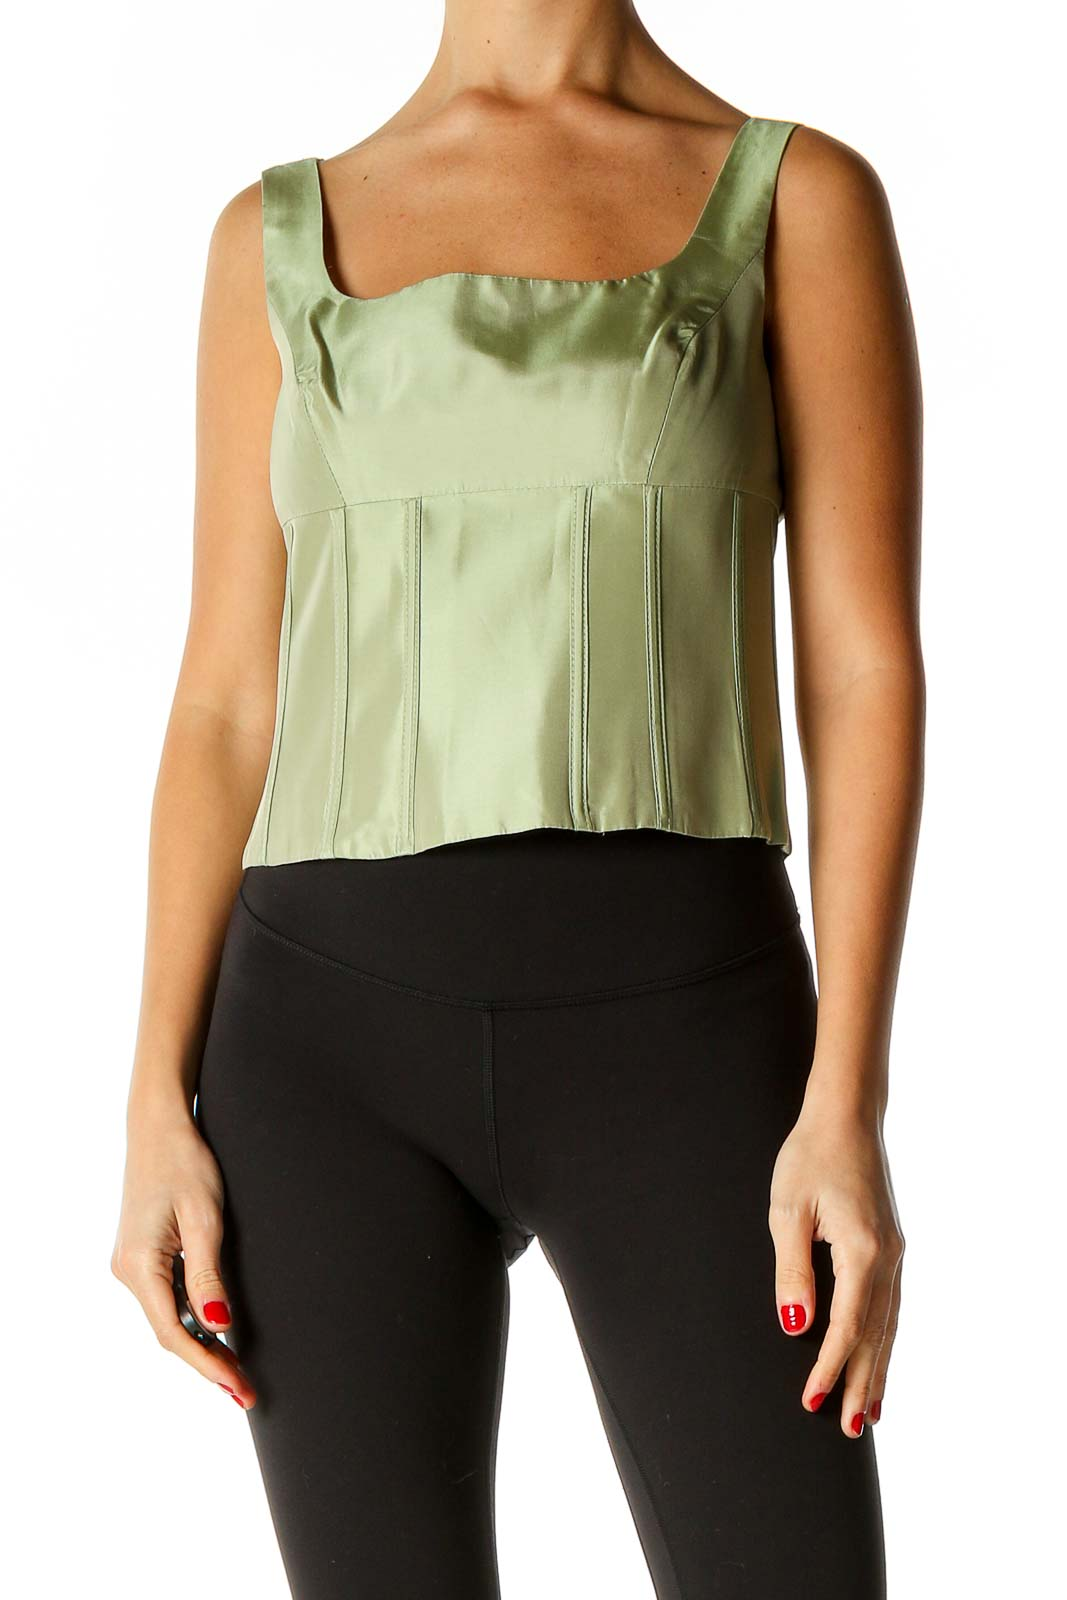 Green Solid Chic Tank Top Front